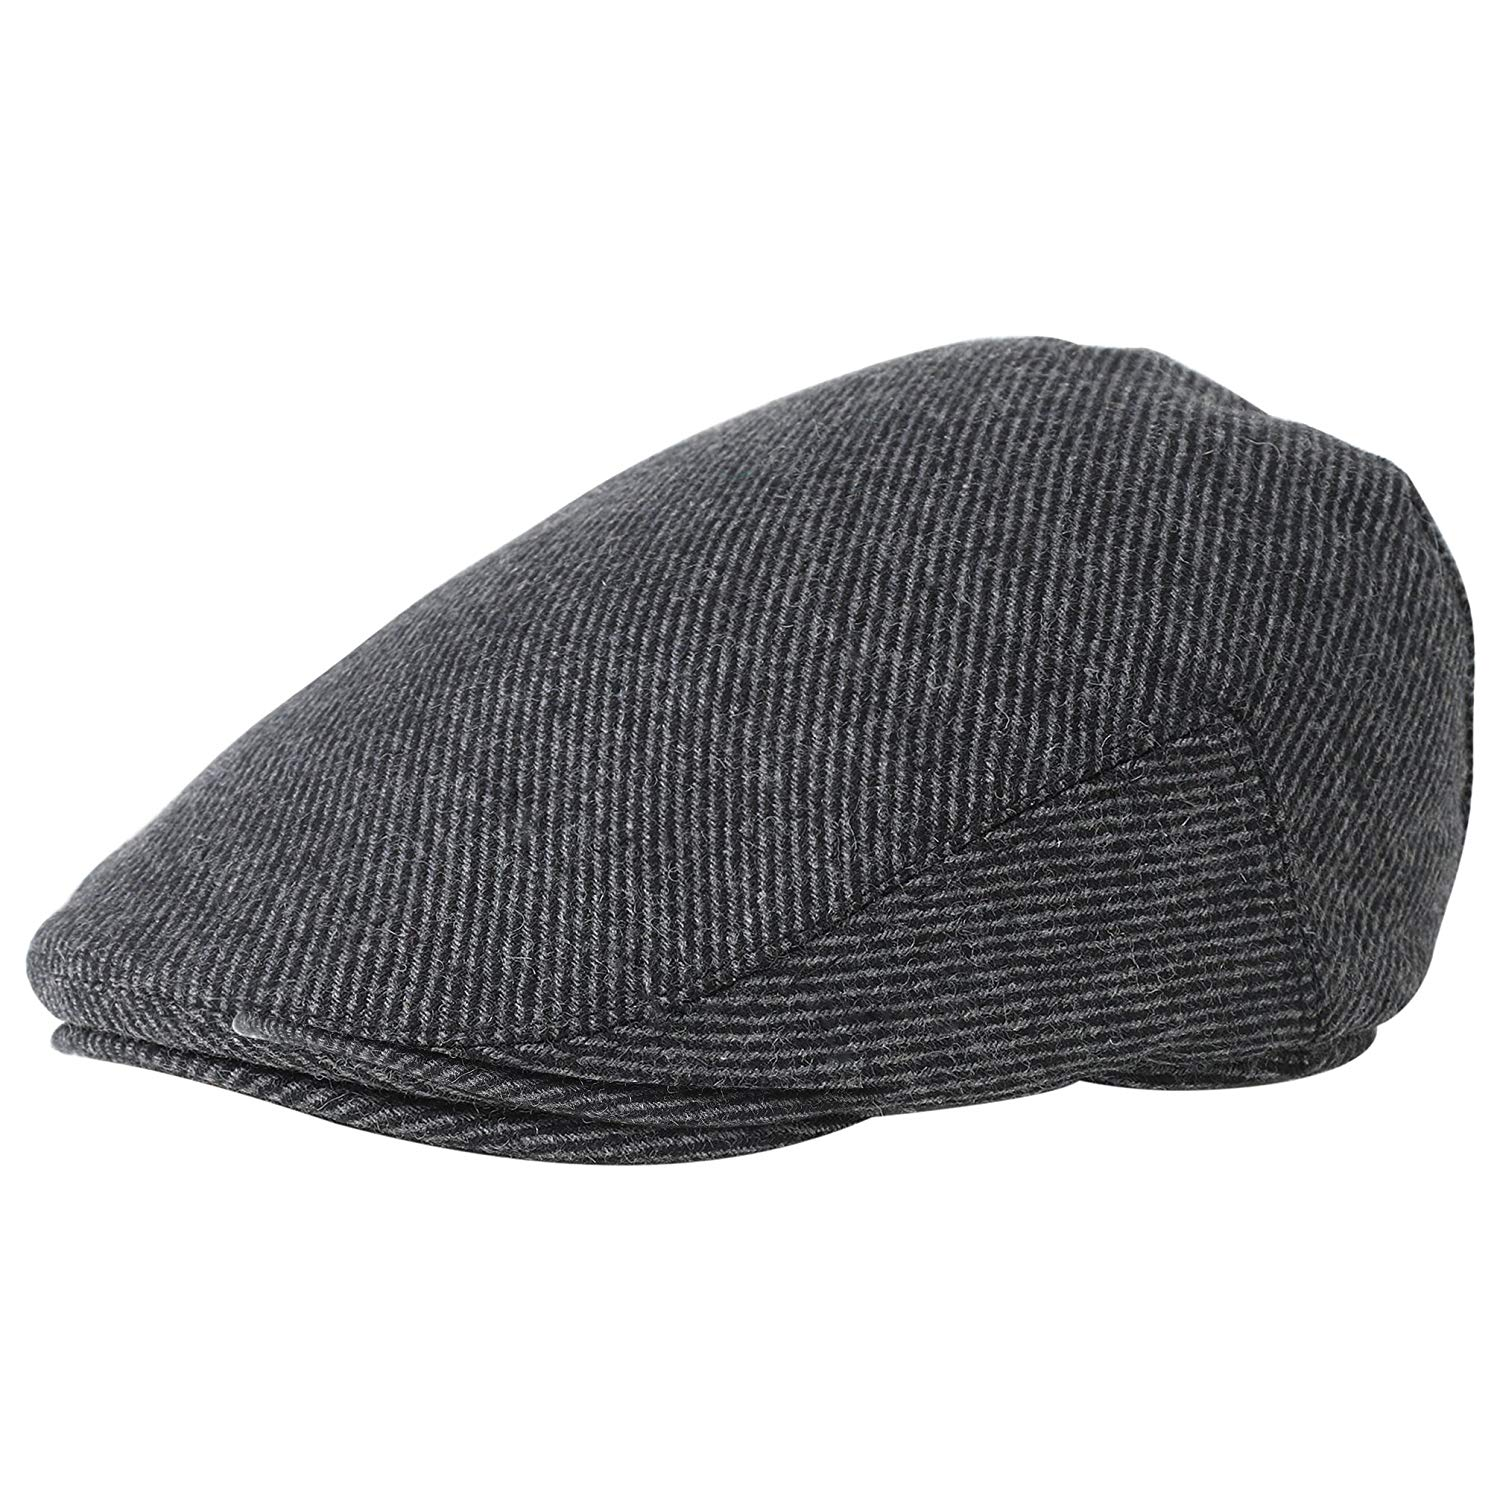 BABEYOND 1920s Gatsby Newsboy Hat Cap for Men Gatsby Hat for Men 1920s Mens Gatsby Costume Accessories